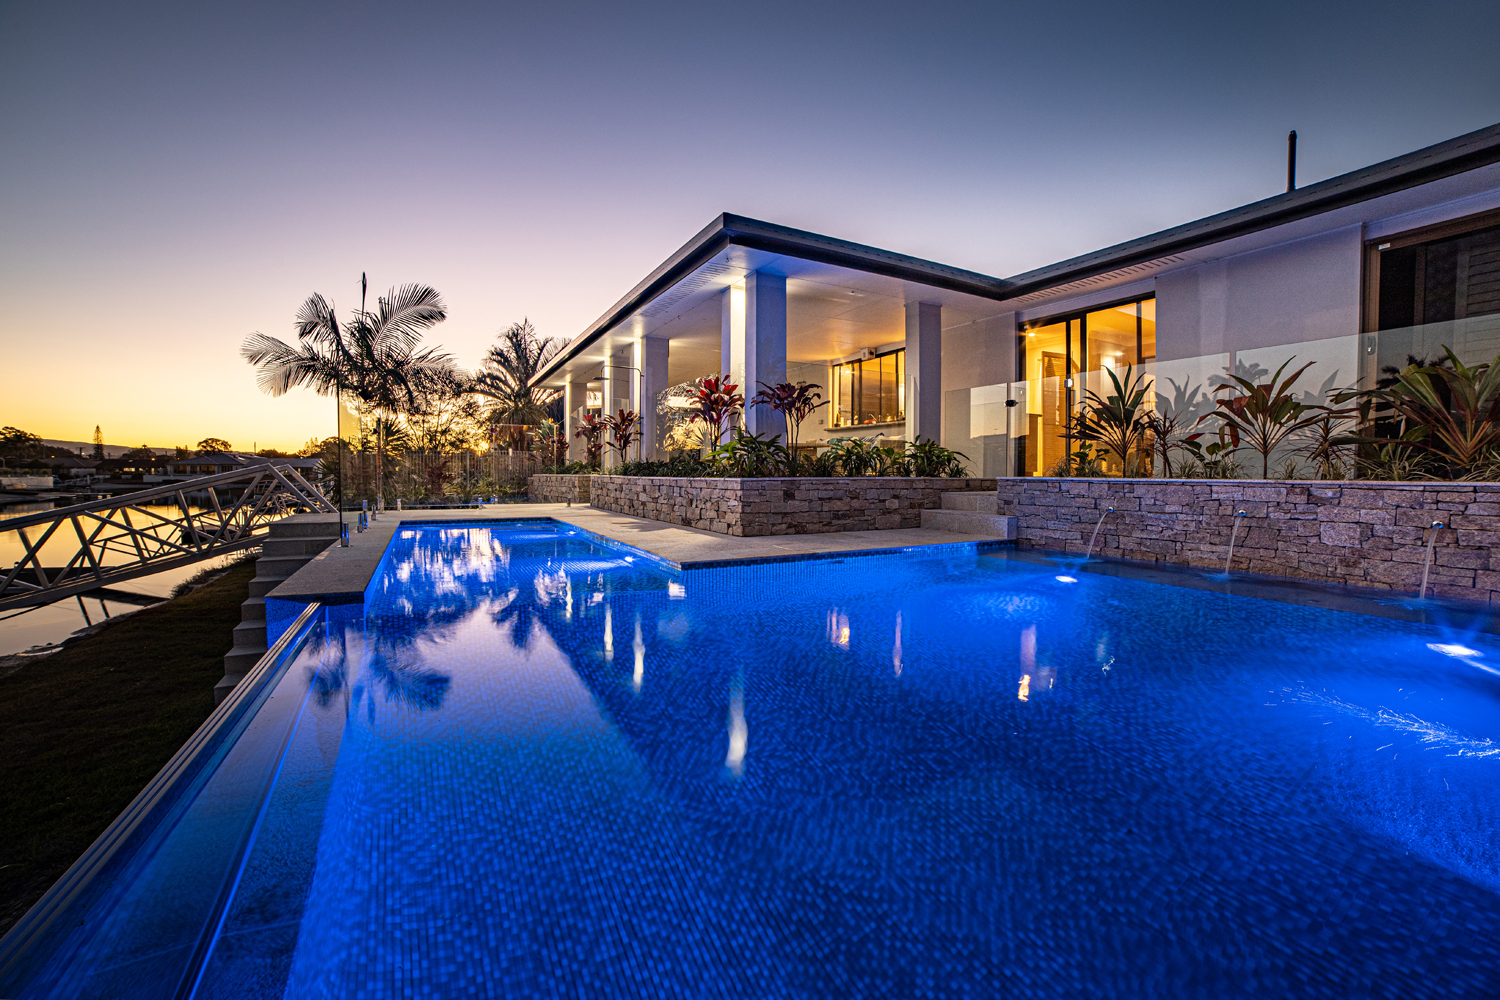 Why not holiday in your own backyard with a stunning Bali-inspired pool?